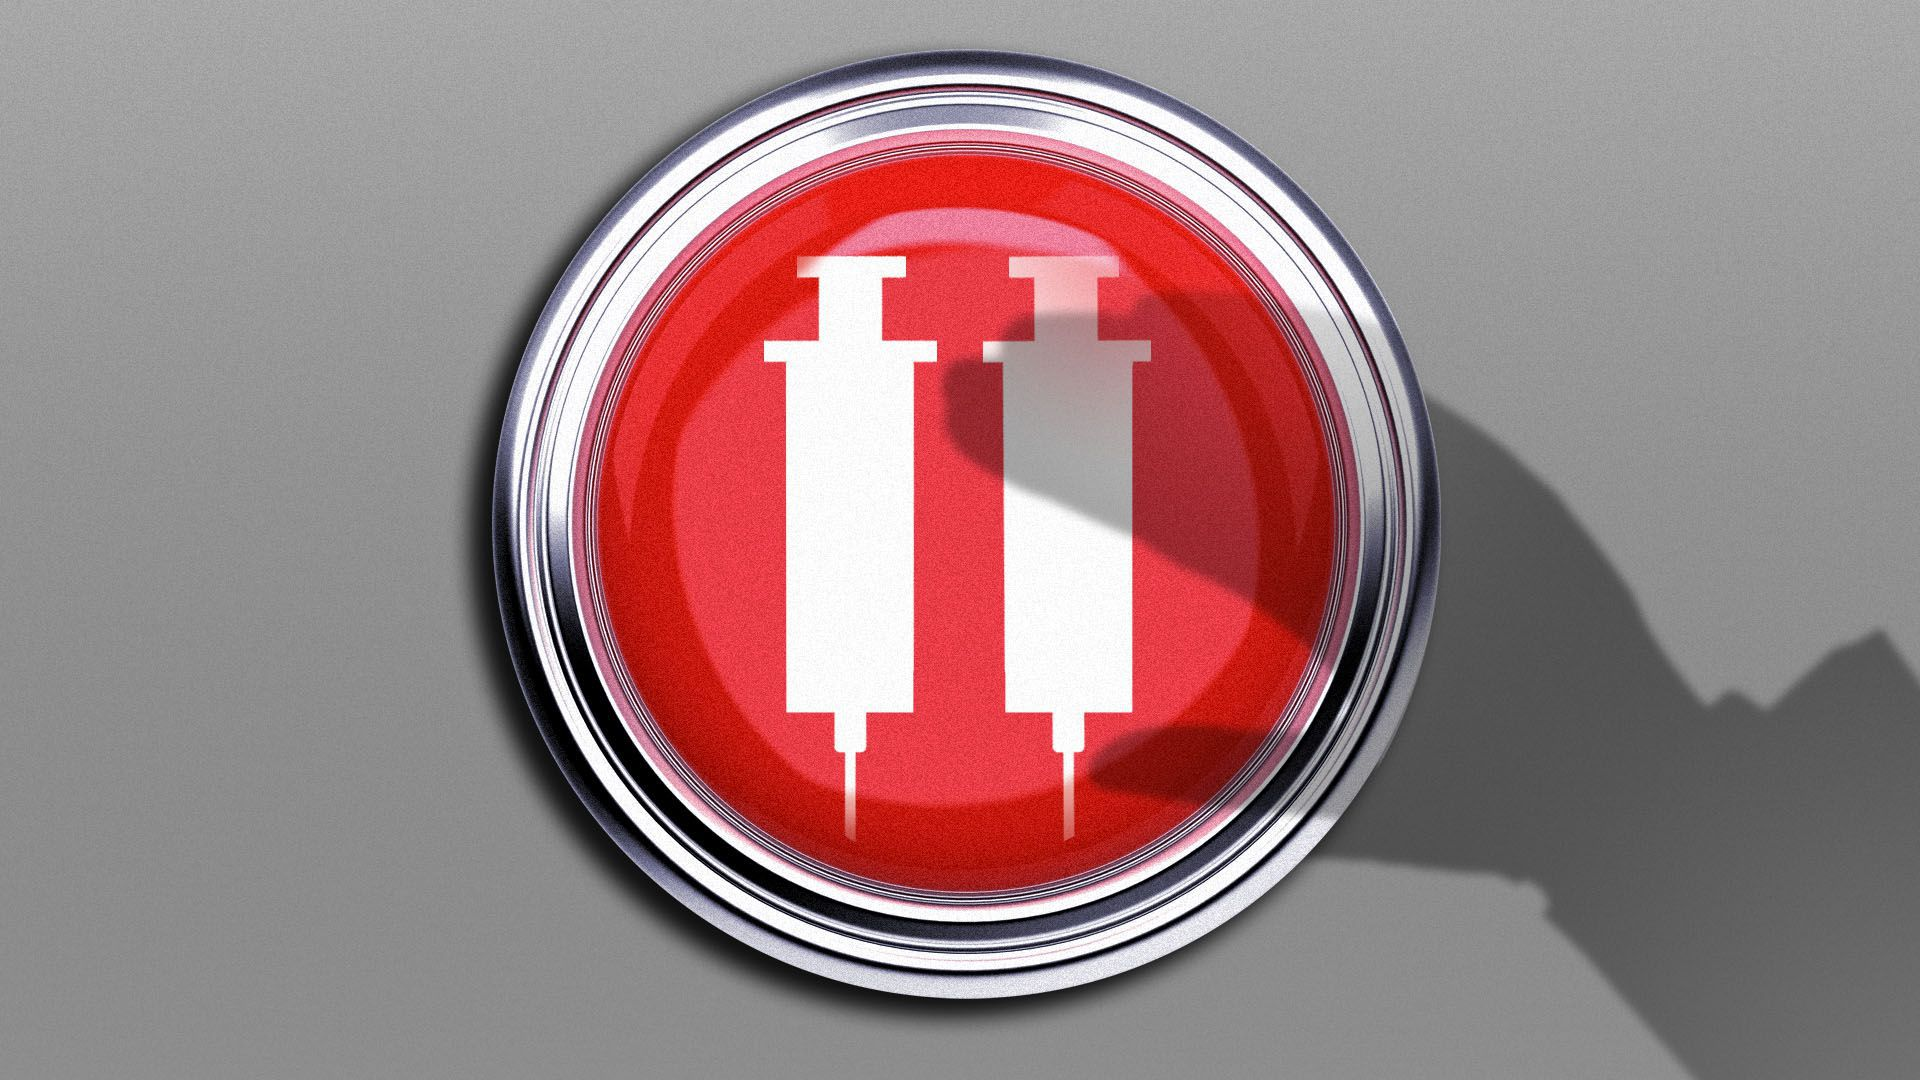 Illustration of a shadow hovering over a giant red button with syringes in the shape of a pause symbol